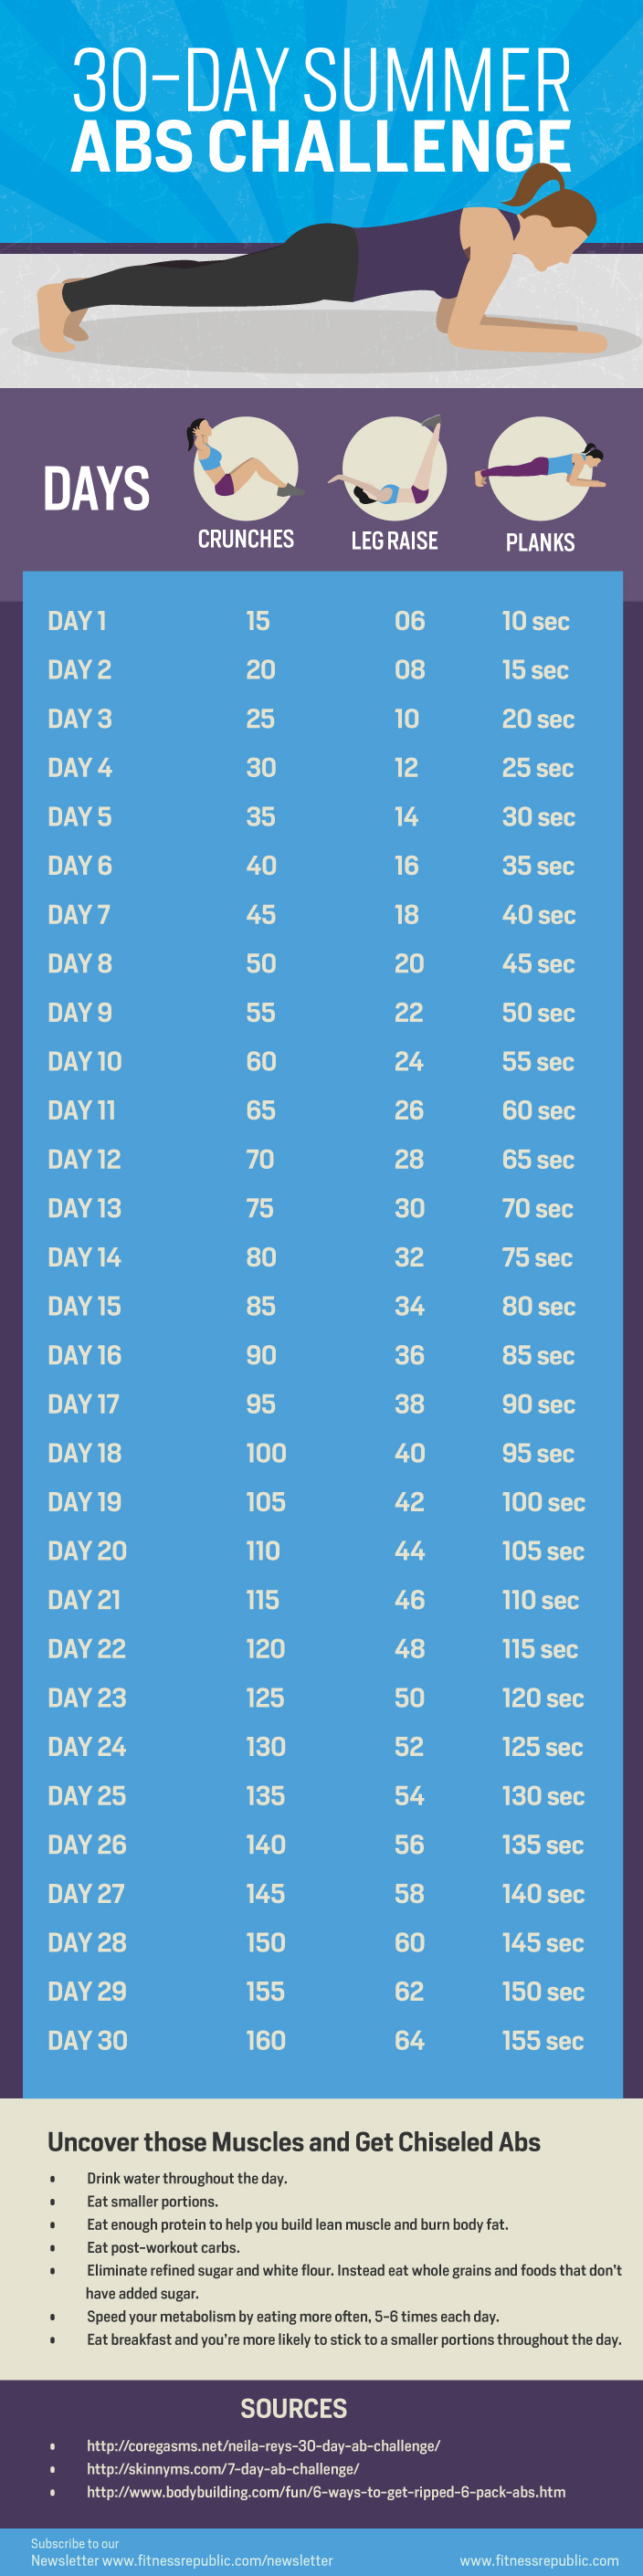 30-day-summer-abs-challenge2-20150607-050100 (1)